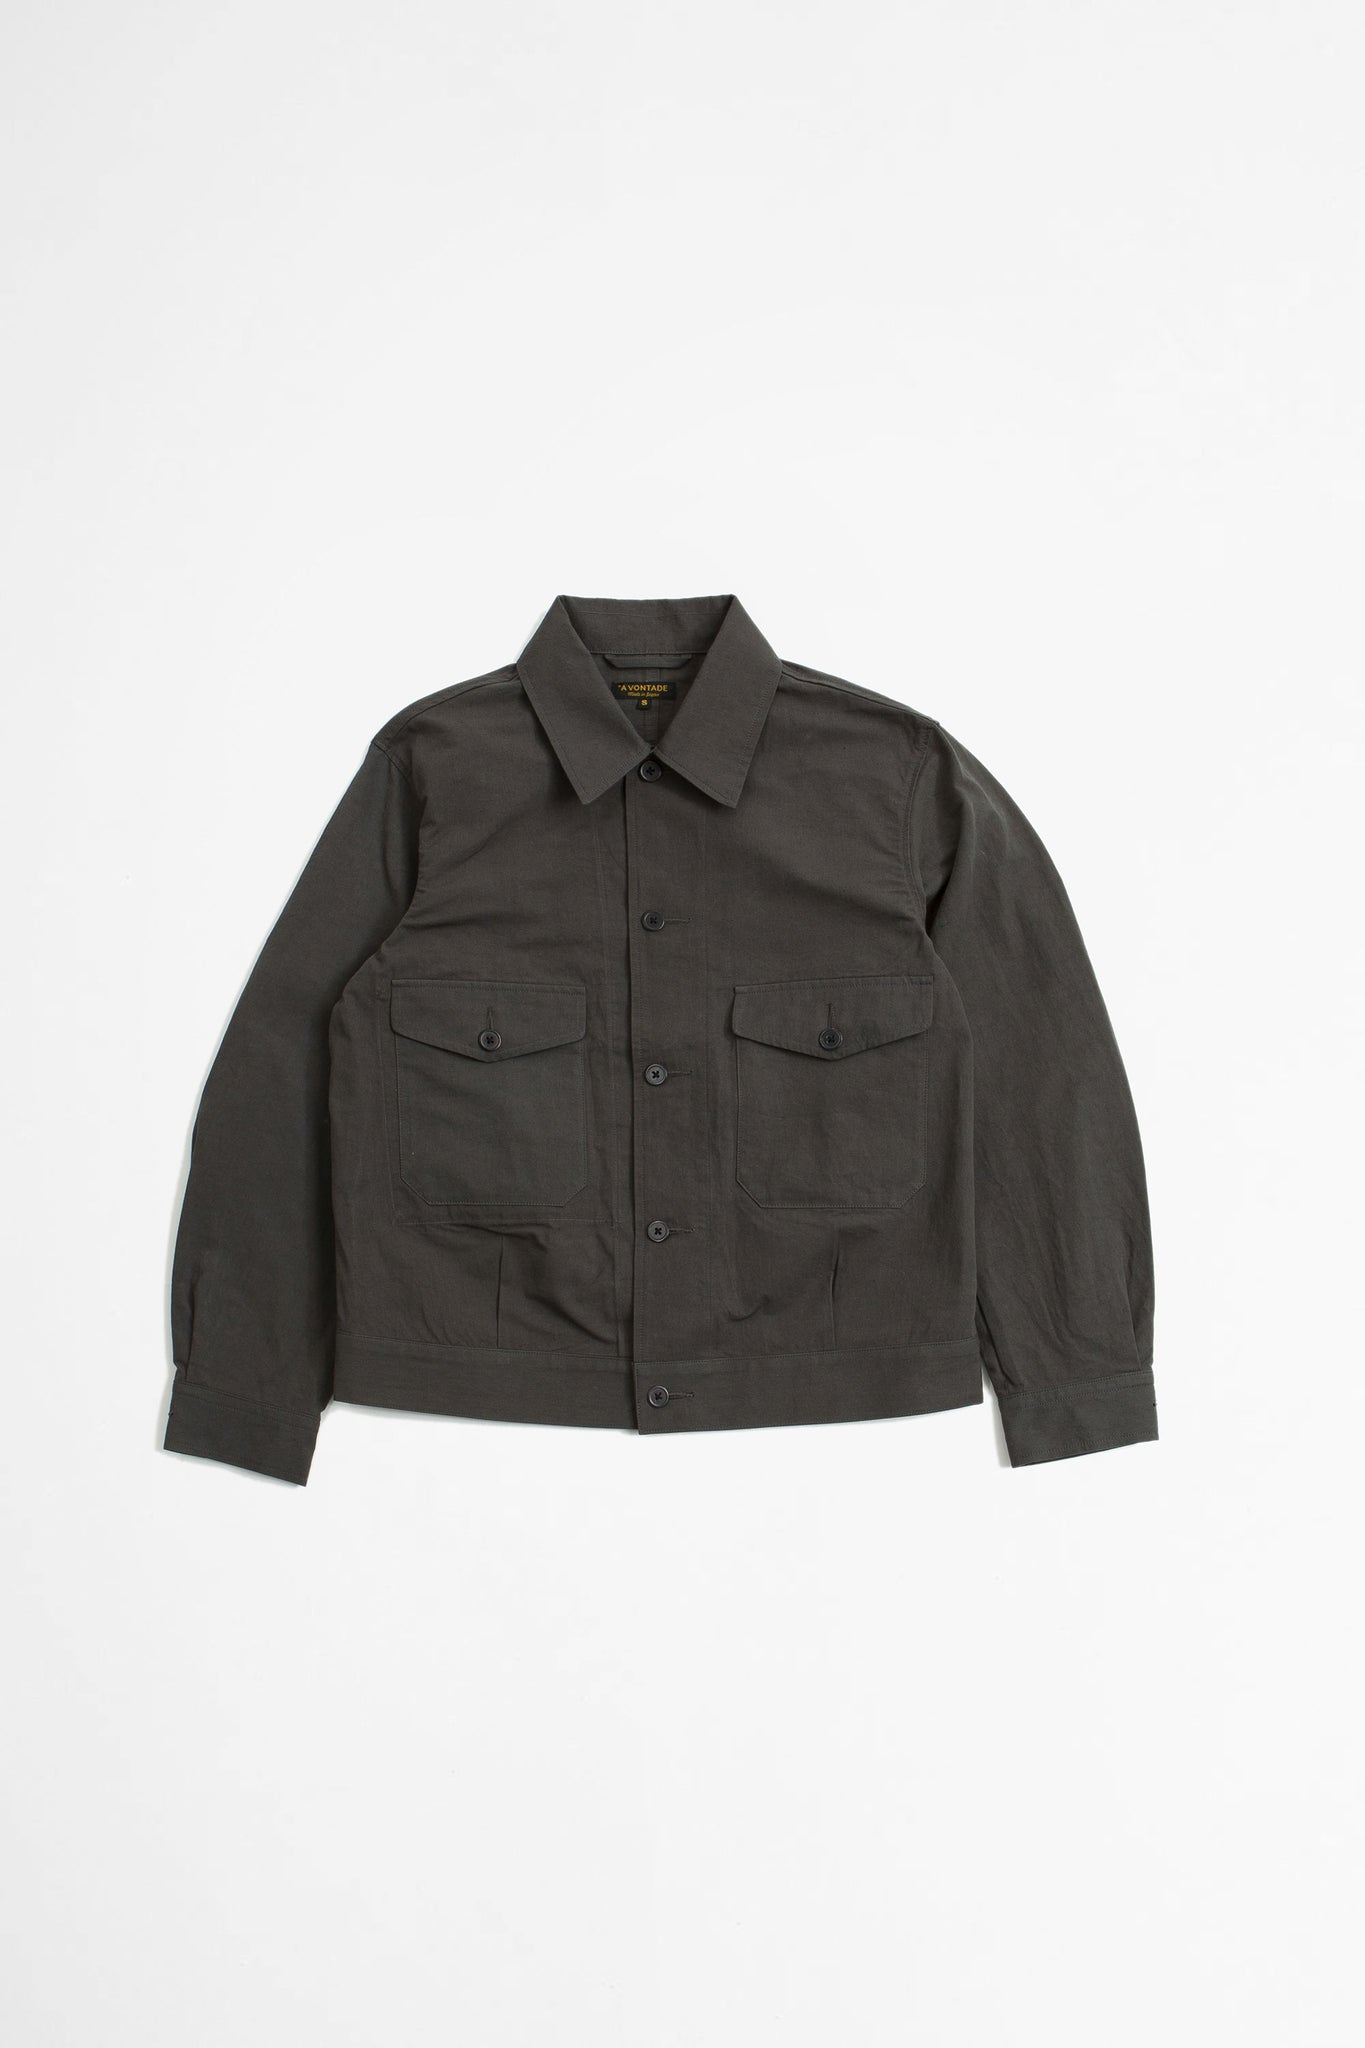 British short jacket charcoal